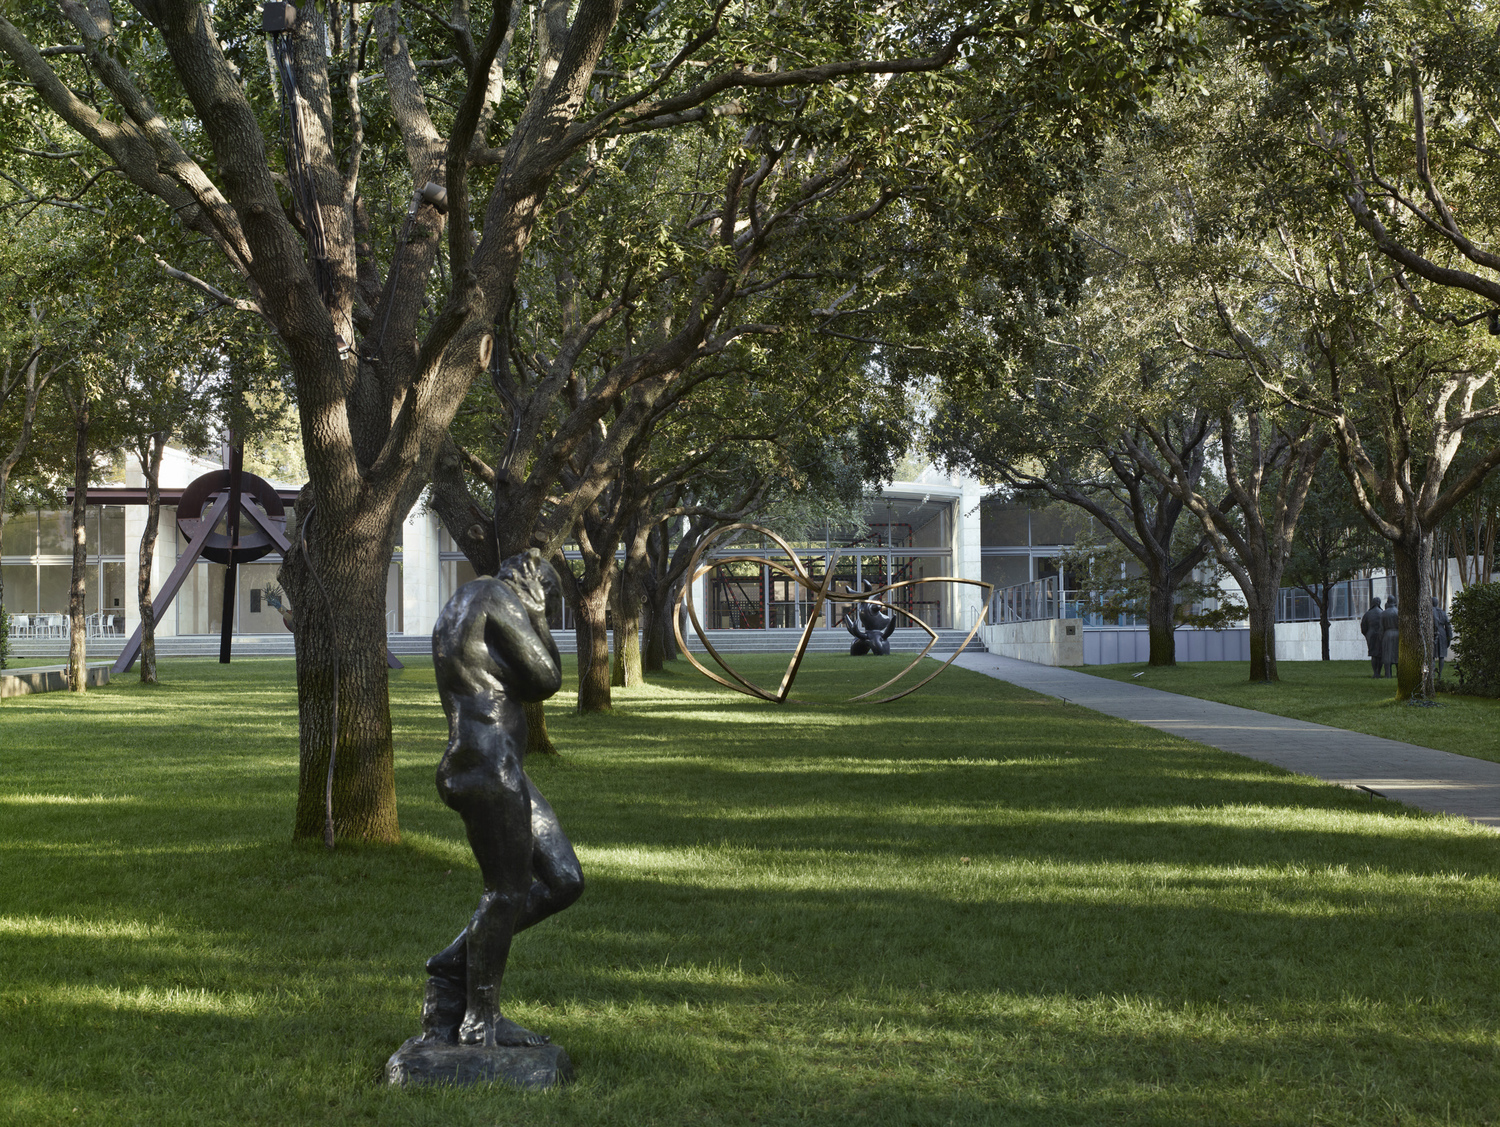 Photography Tim Hursley for the Nasher Sculpture Center